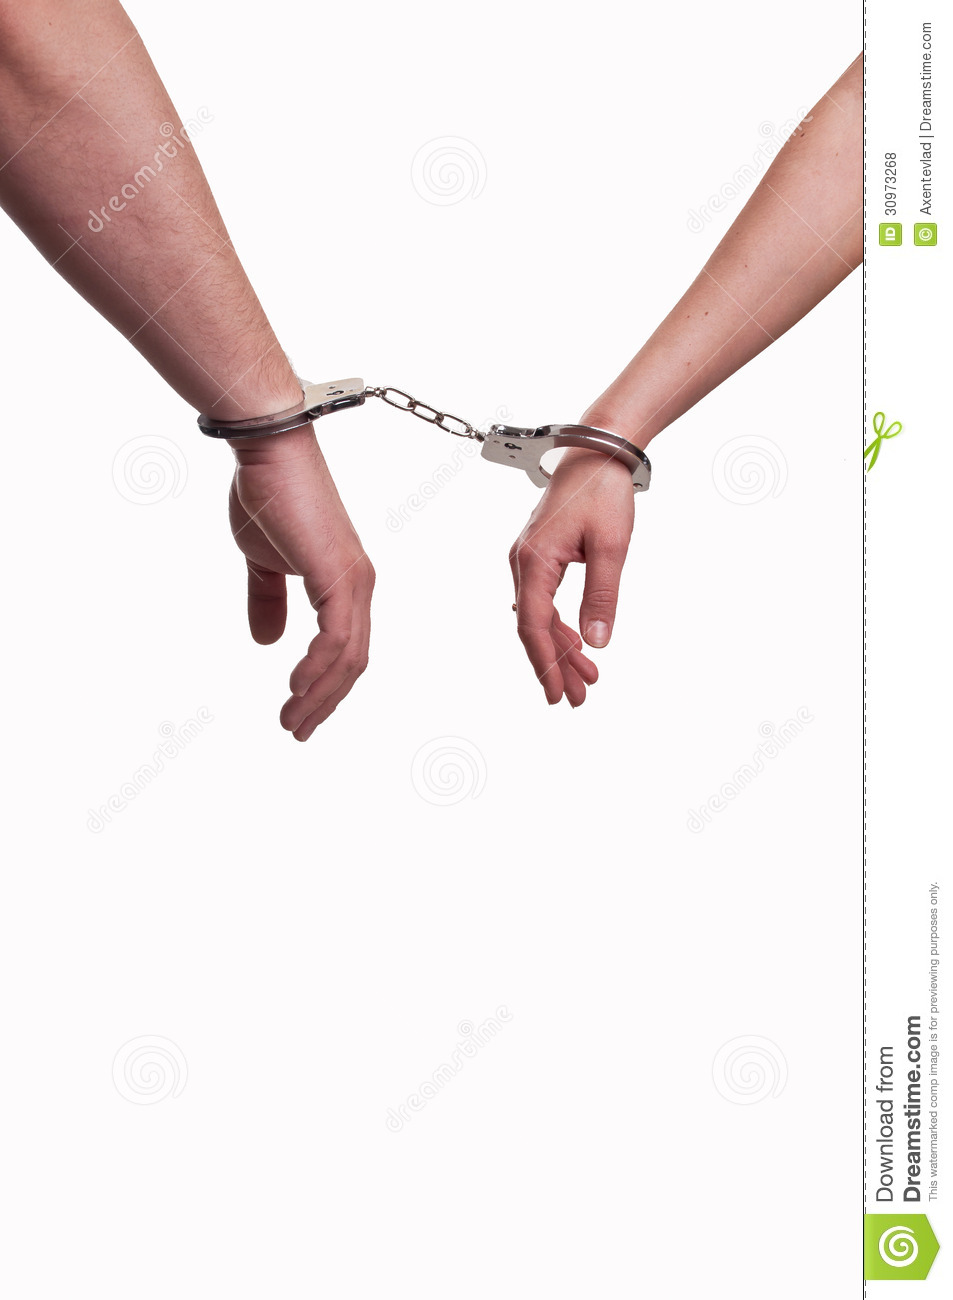 Hands of a man and a woman in handcuffs - relationship concept